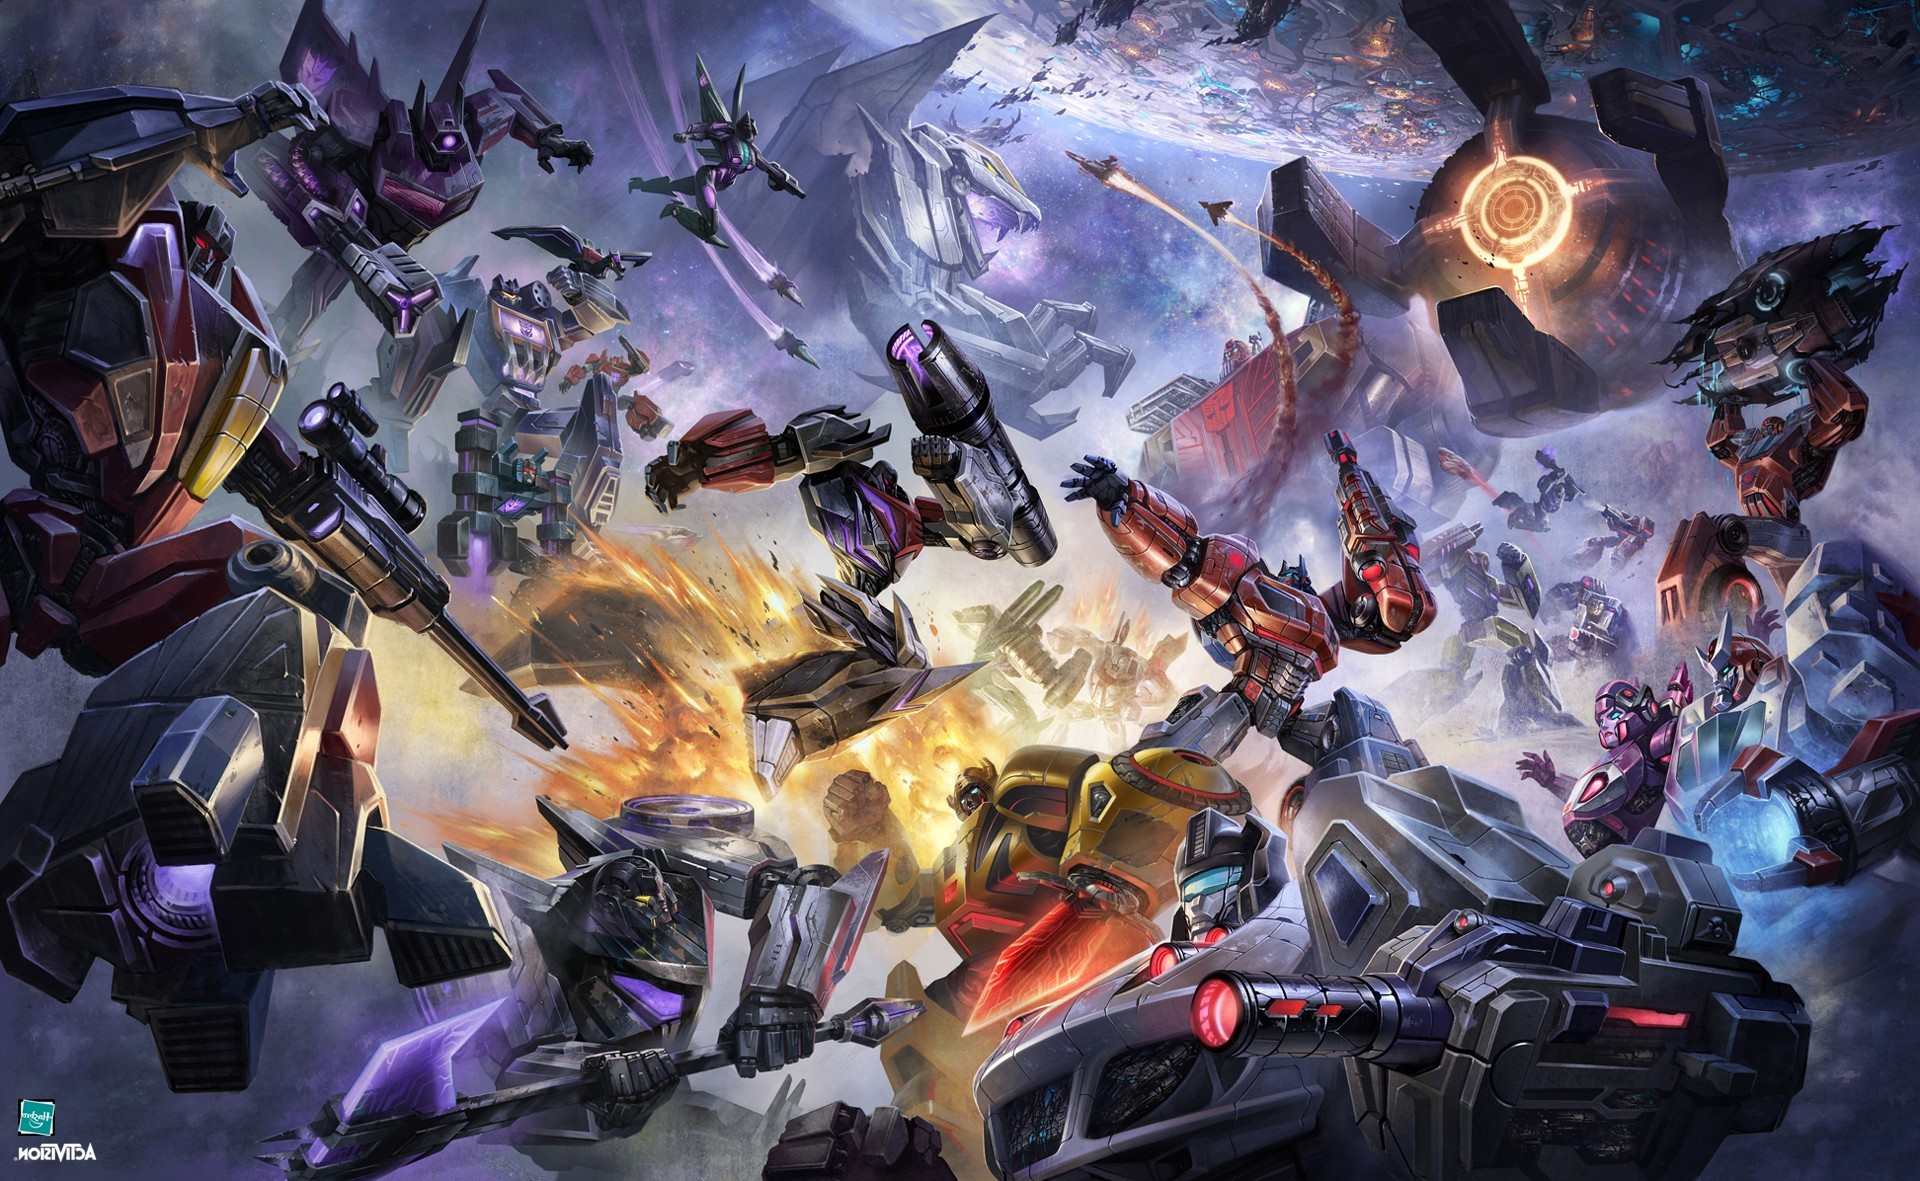 Transformers Fall Of Cybertron Wallpaper Hd Transformers Artwork Optimus Prime Wallpapers Hd